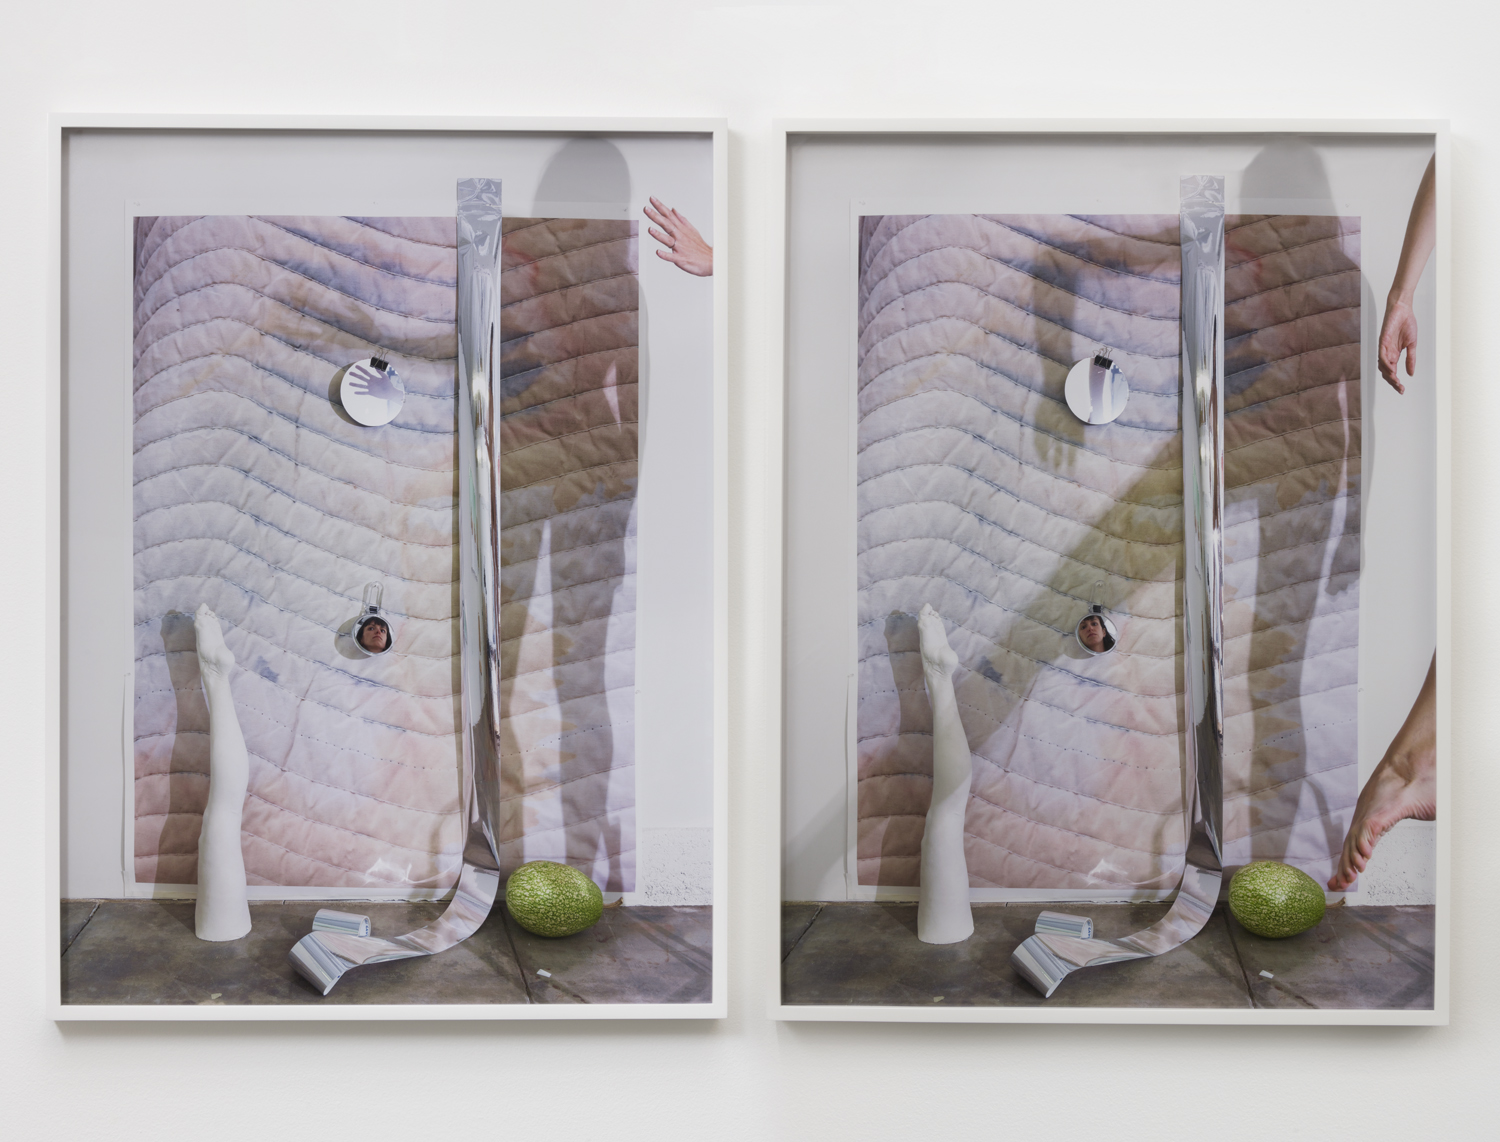 Heather Rasmussen  Untitled diptych (Shadow play on blanket wall with leg, squash and mirrors), 2017  2 pigment prints  32 x 24 inches each print